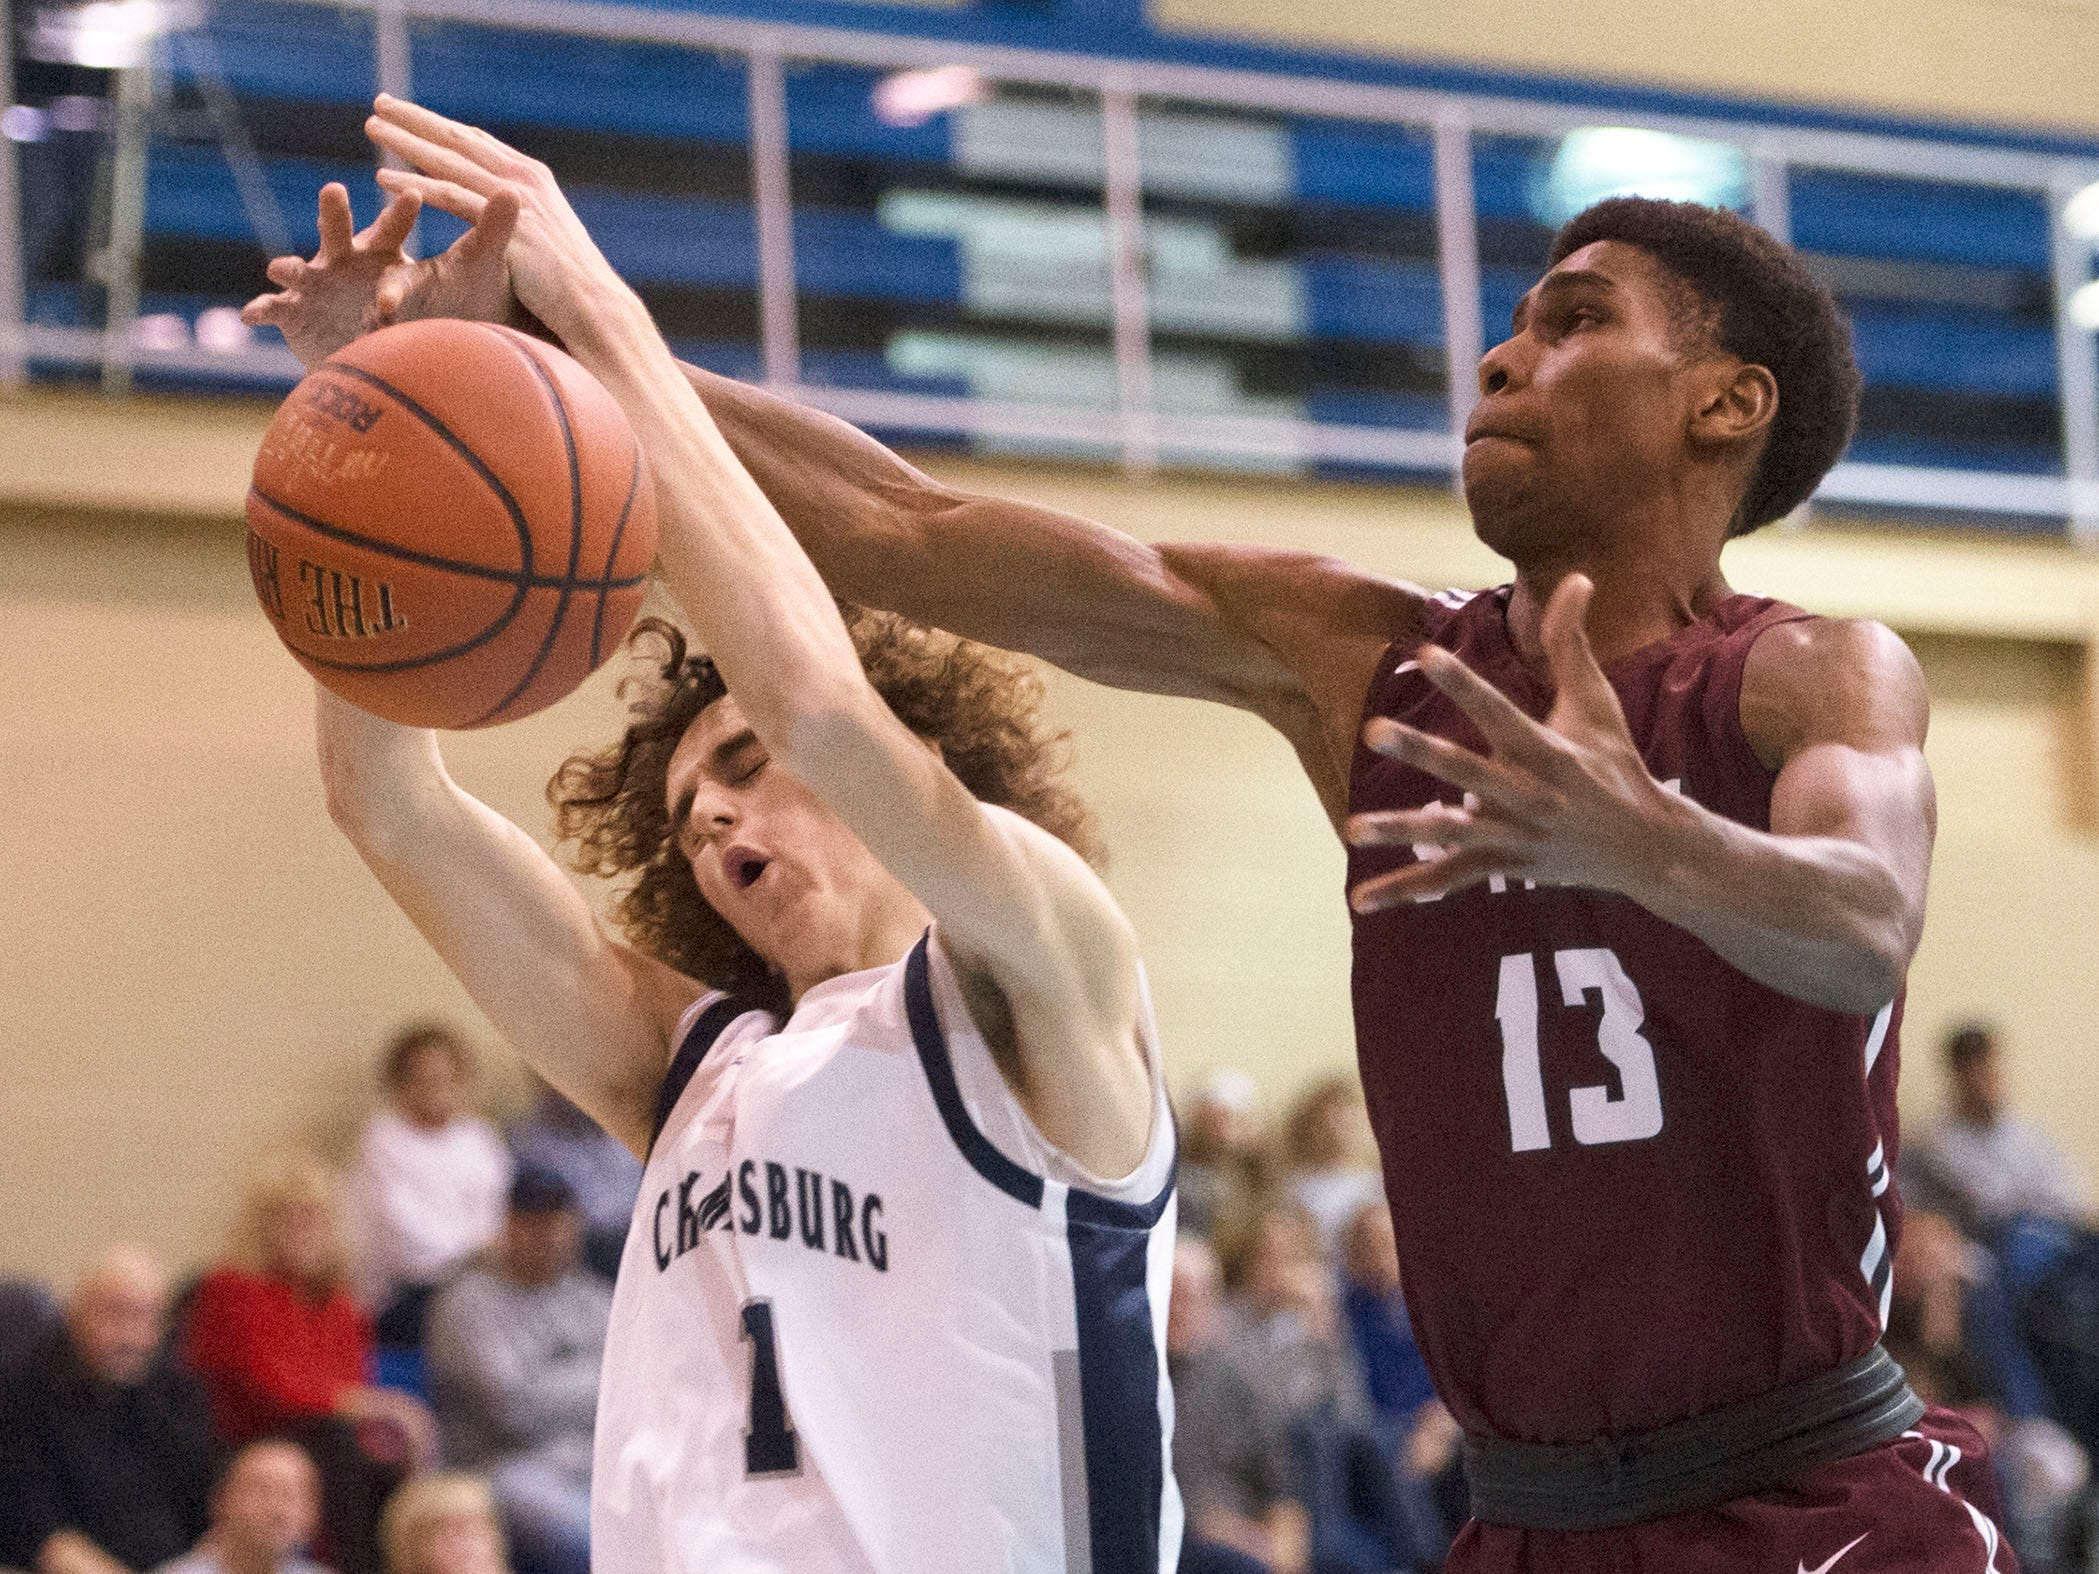 Chambersburg's Aaron Maynard, left, shoots against State College's Cam Villarouel. Chambersburg dropped a buzzer beater 42-40 to State College during a District 3 basketball, Friday, Dec. 14, 2018.